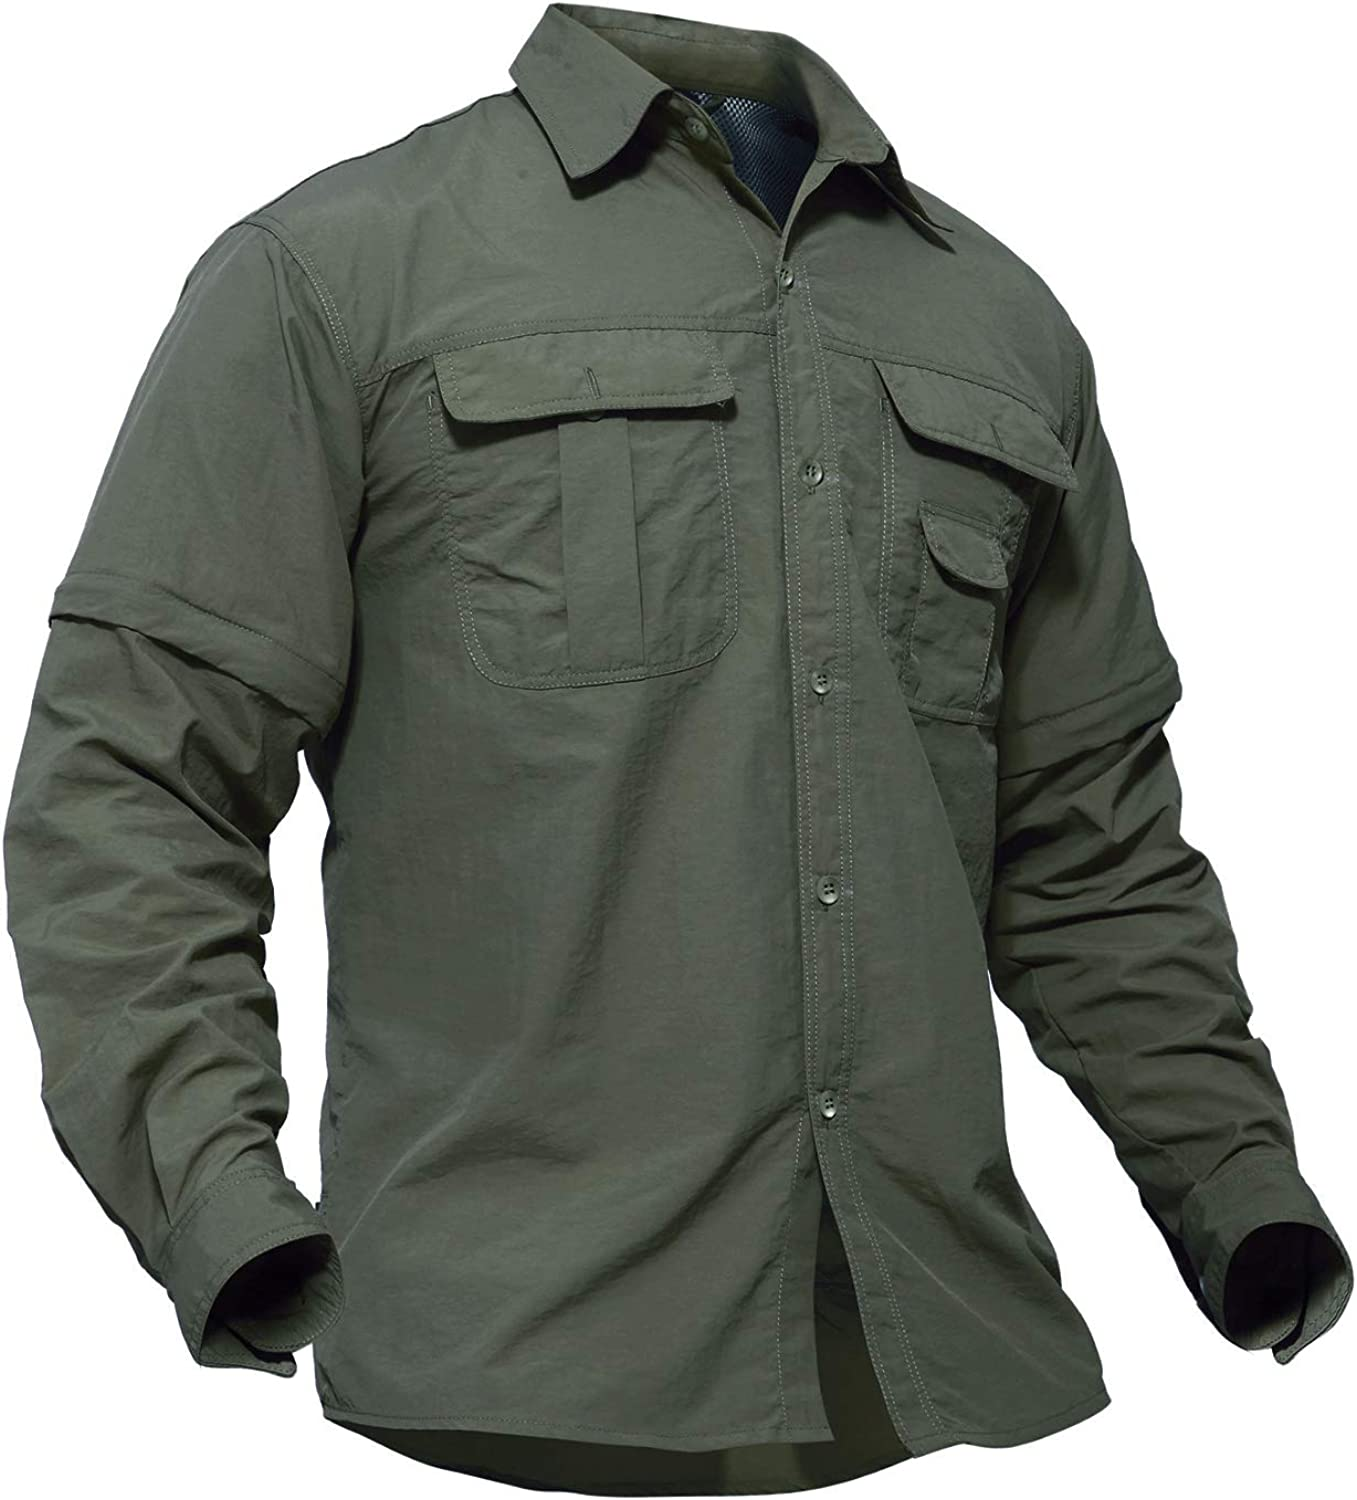 TACVASEN Mens Breathable Quick Dry UV Protection Solid Convertible Long Sleeve Shirt